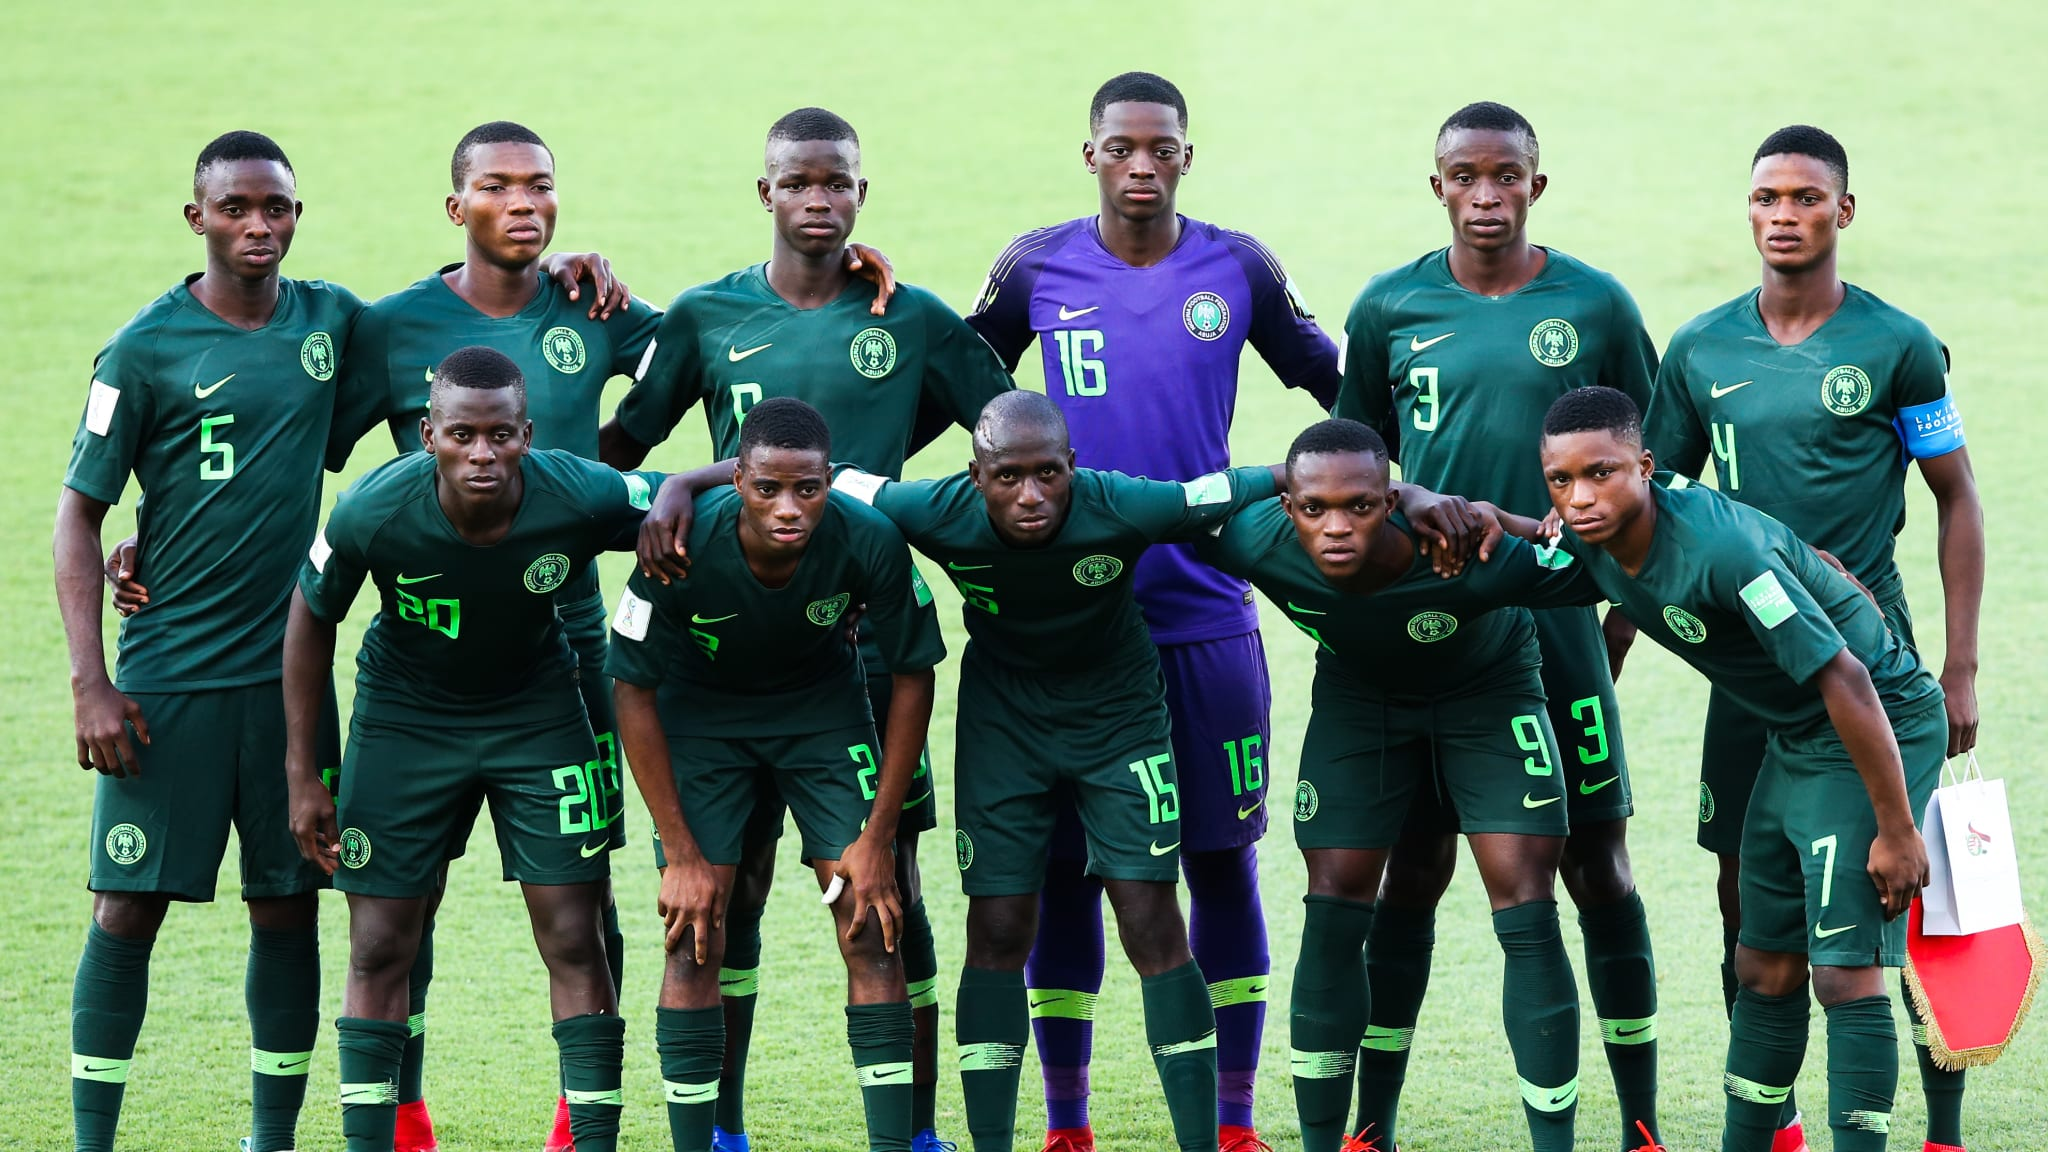 U-17 World Cup: Golden Eaglets storm back to demolish Hungary with late blitz of goals